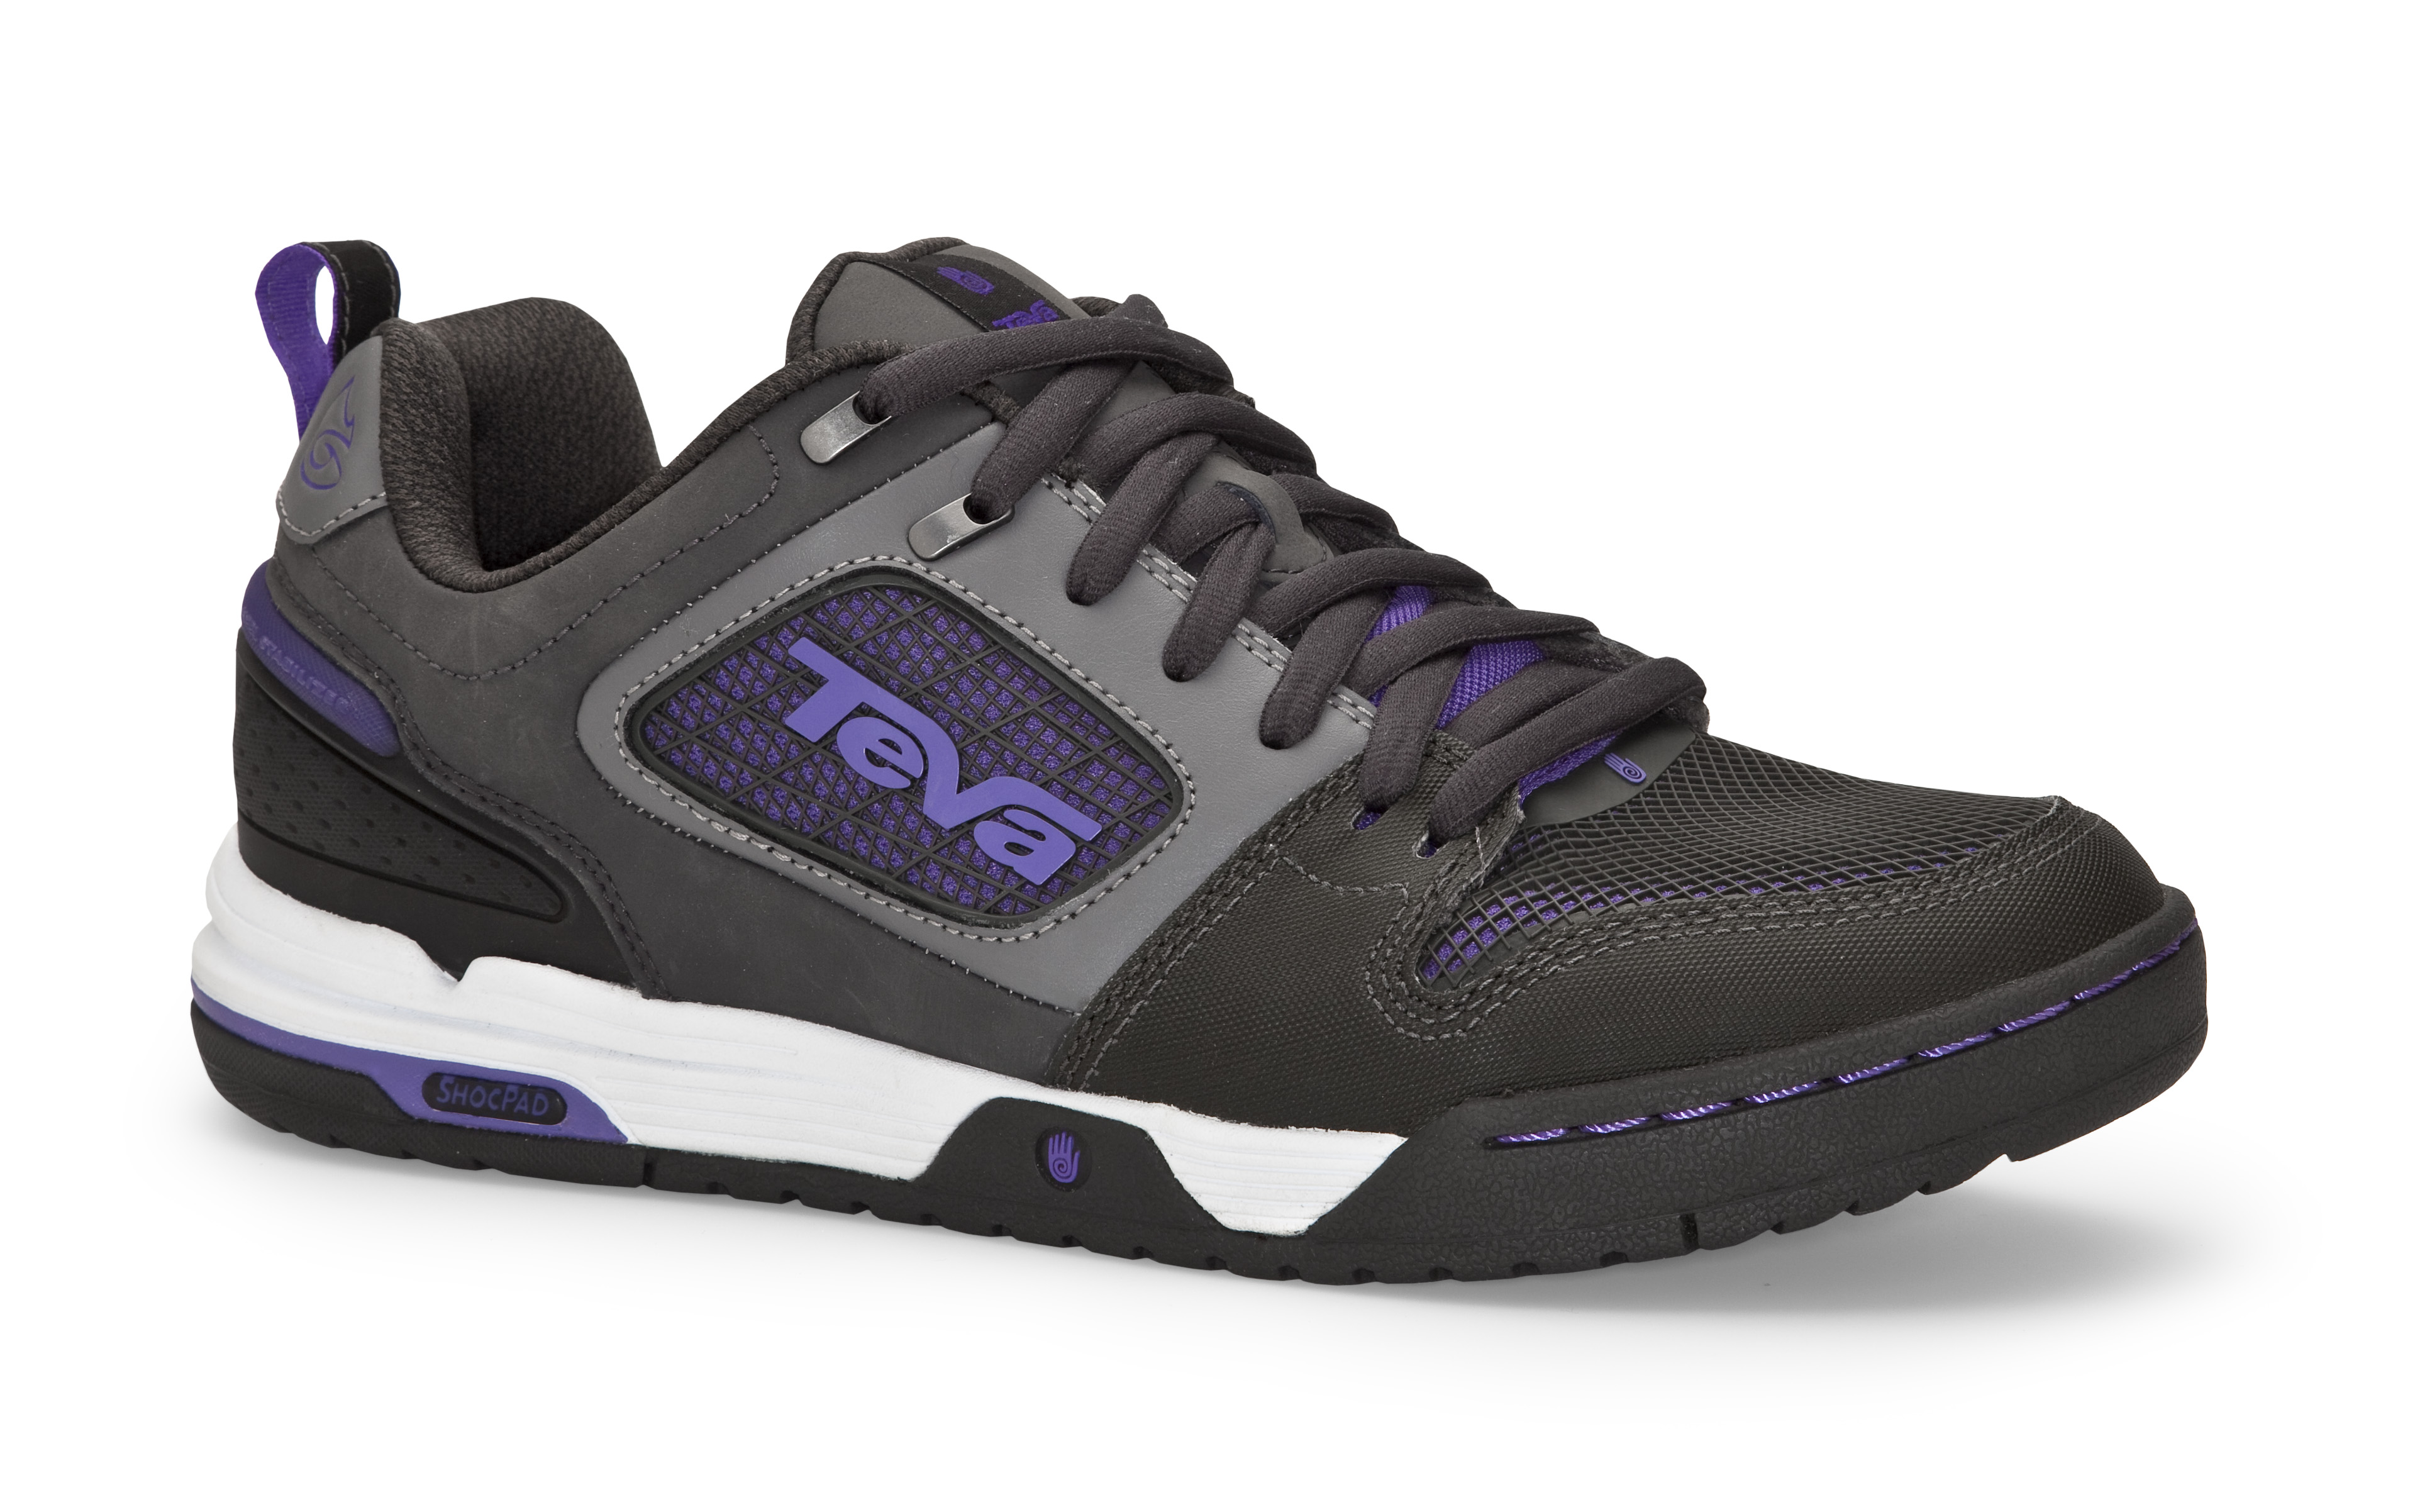 The Teva Links freeride MTB shoe launched in Fall 2011.